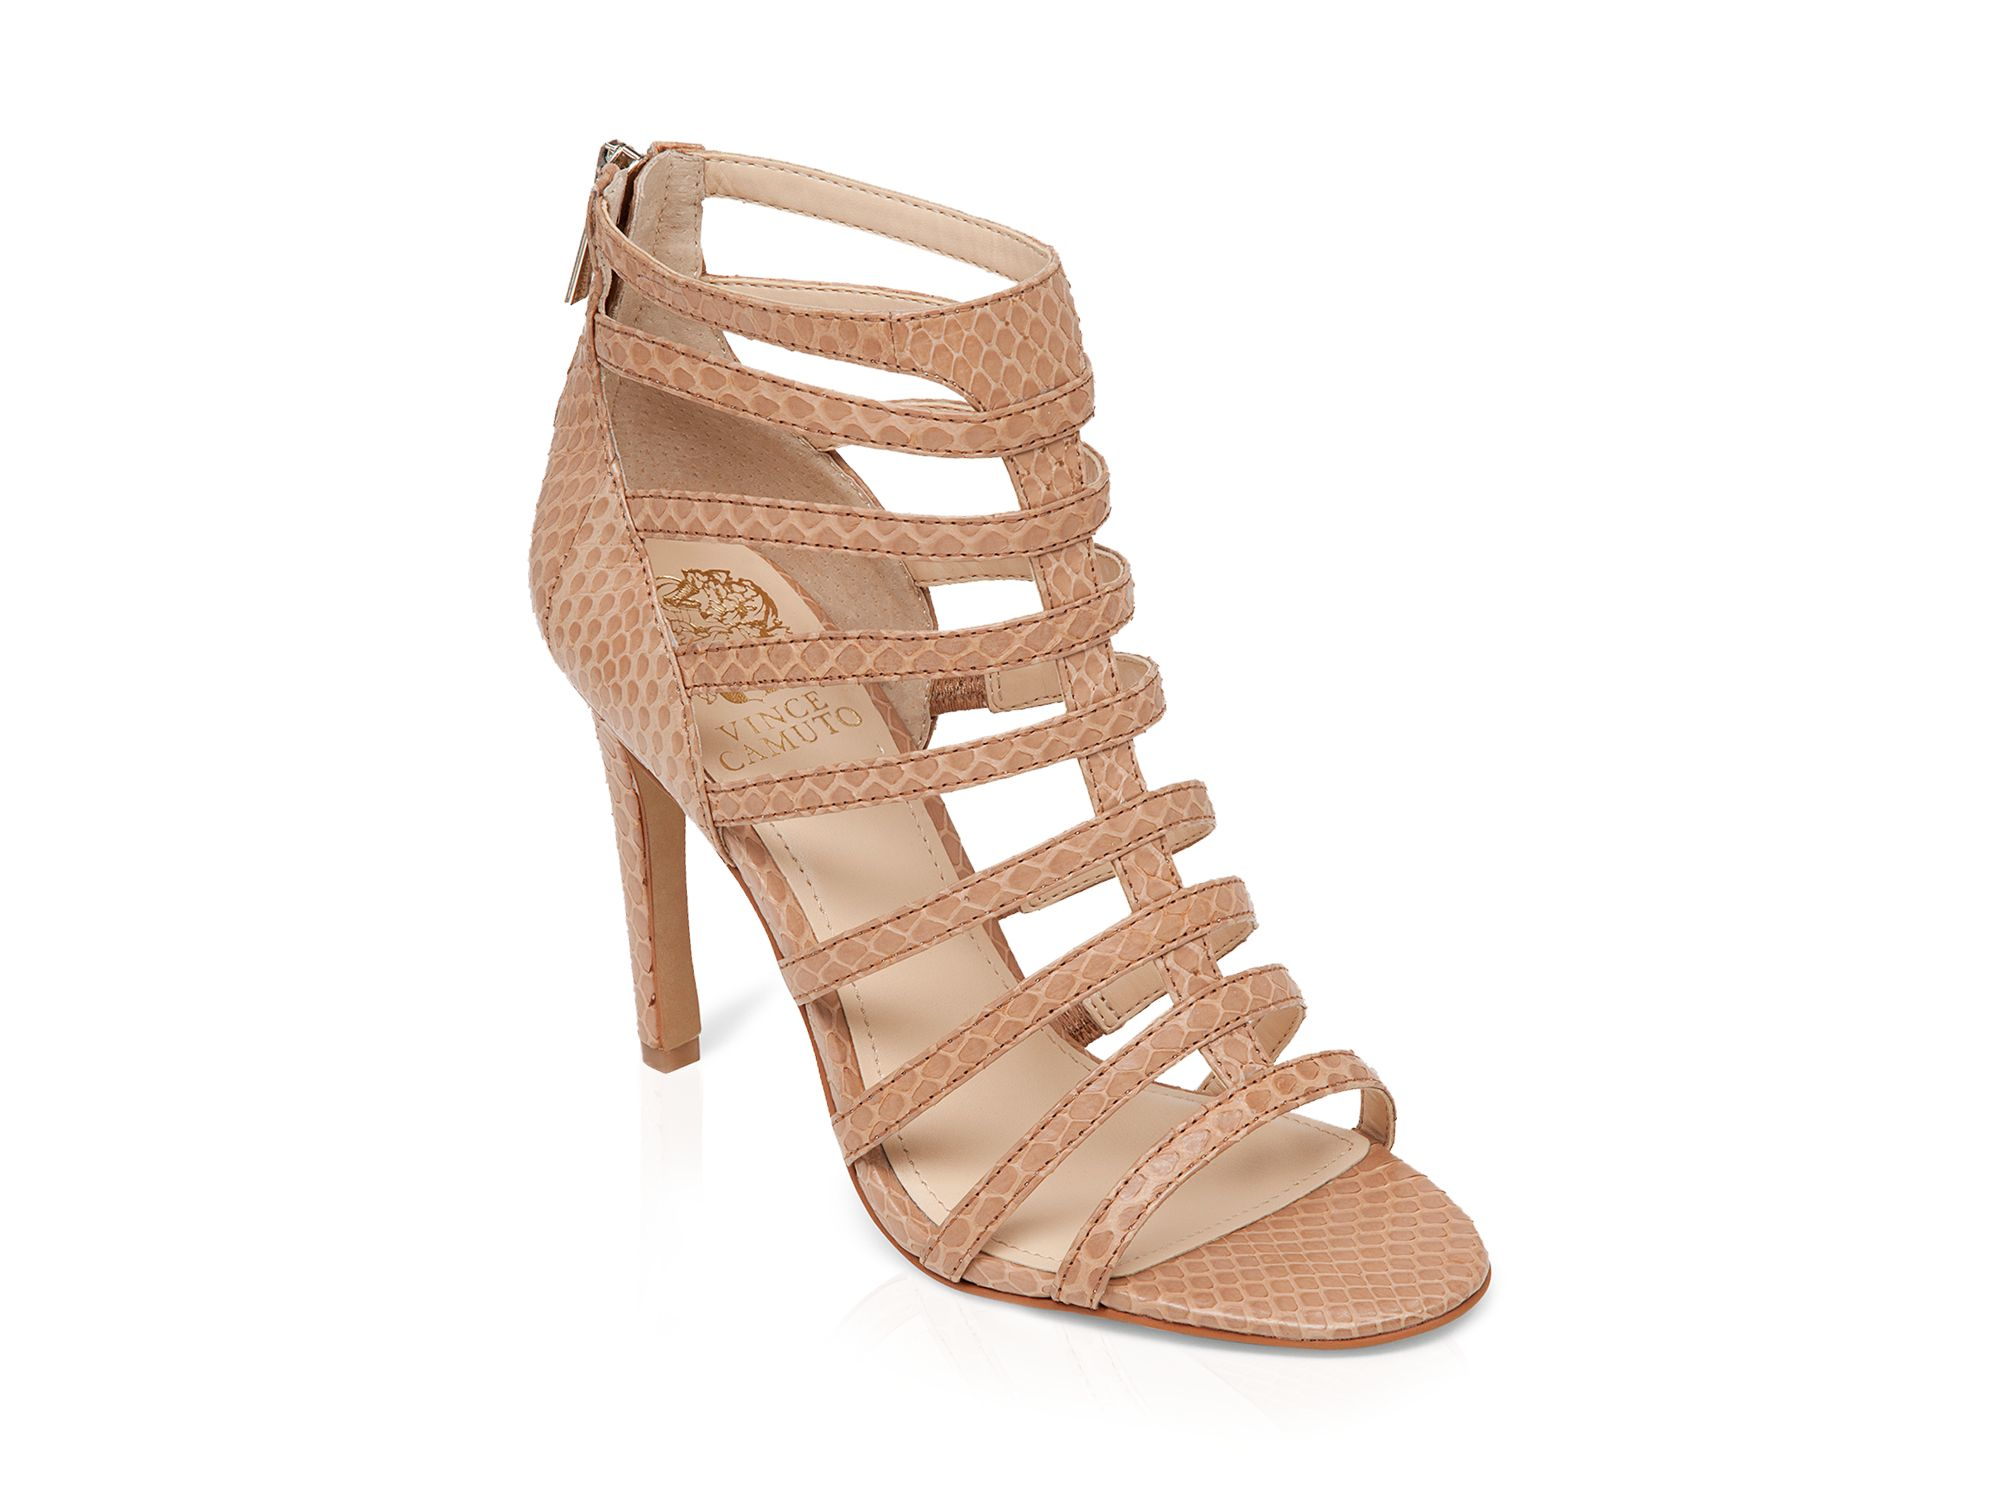 Lyst Vince Camuto Open Toe Caged Gladiator Sandals